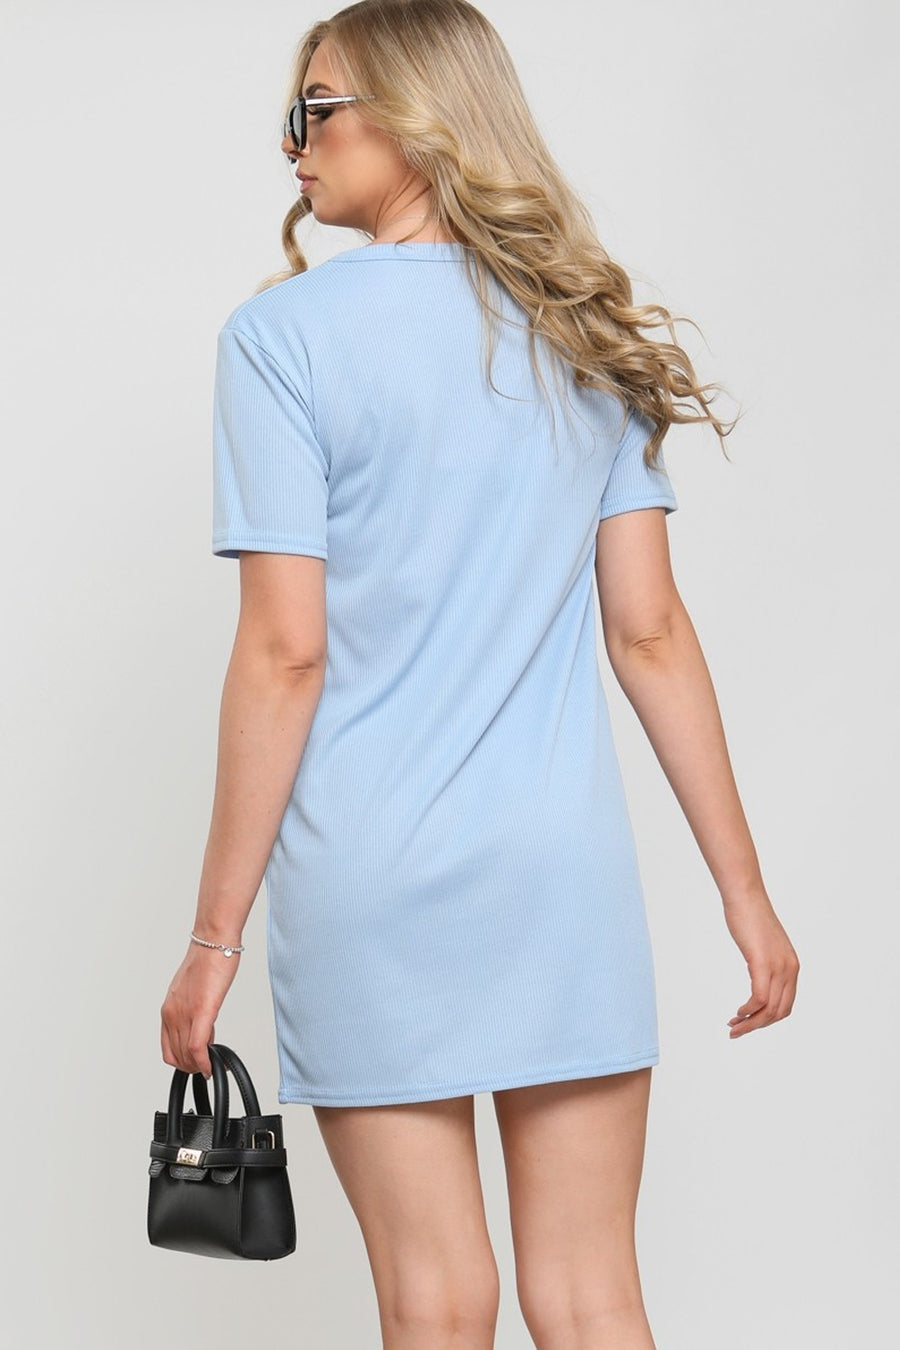 Blue Embroidered Butterfly Rib Dress - Janna